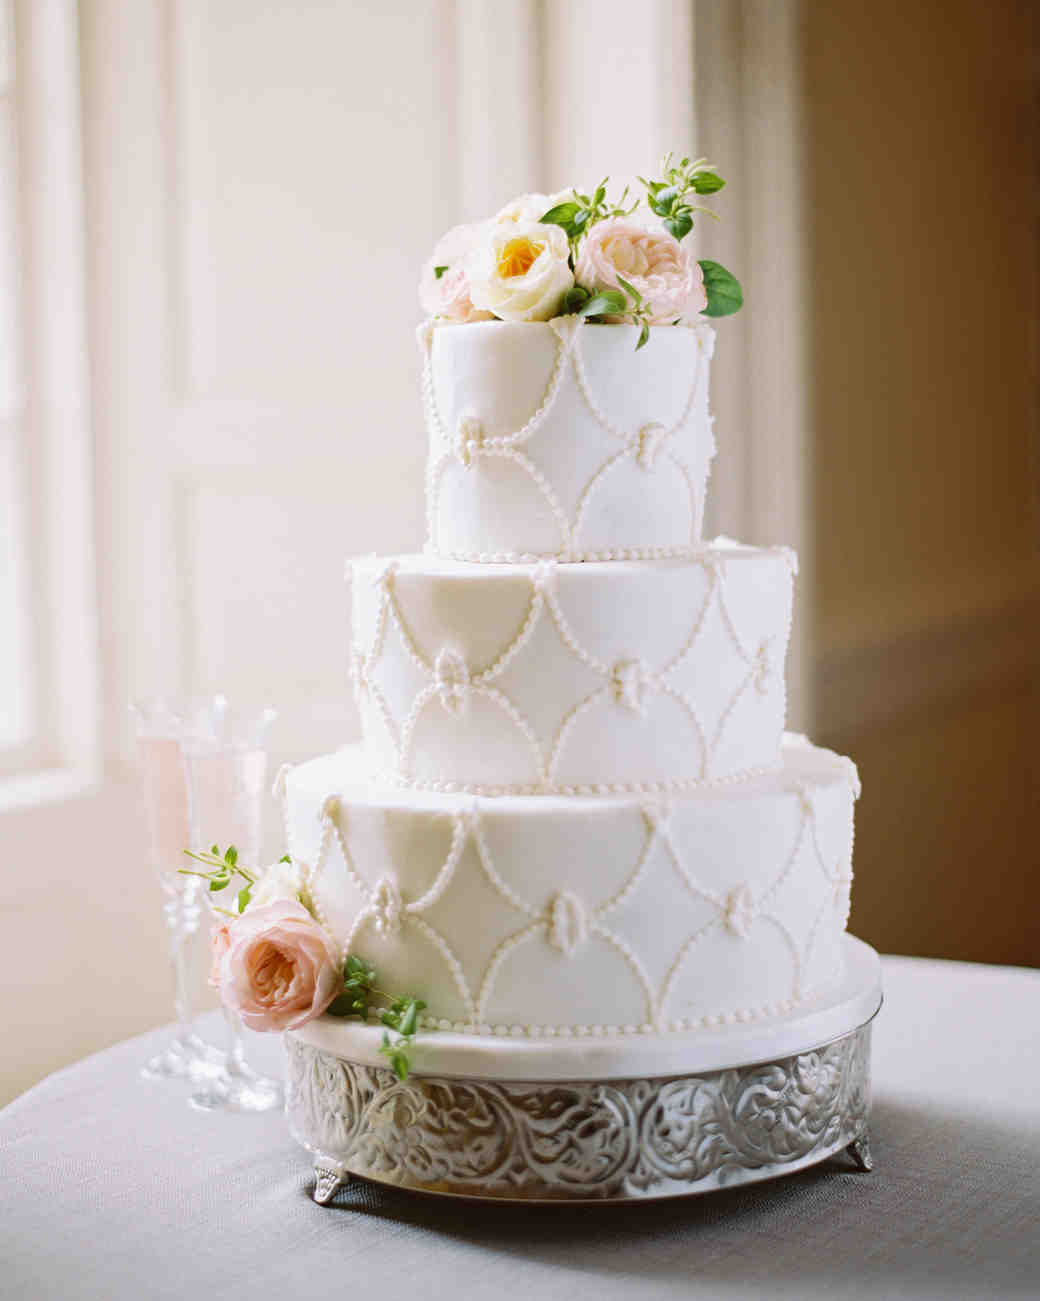 25 New Takes on Traditional Wedding Cake Flavors   Martha Stewart     25 New Takes on Traditional Wedding Cake Flavors   Martha Stewart Weddings